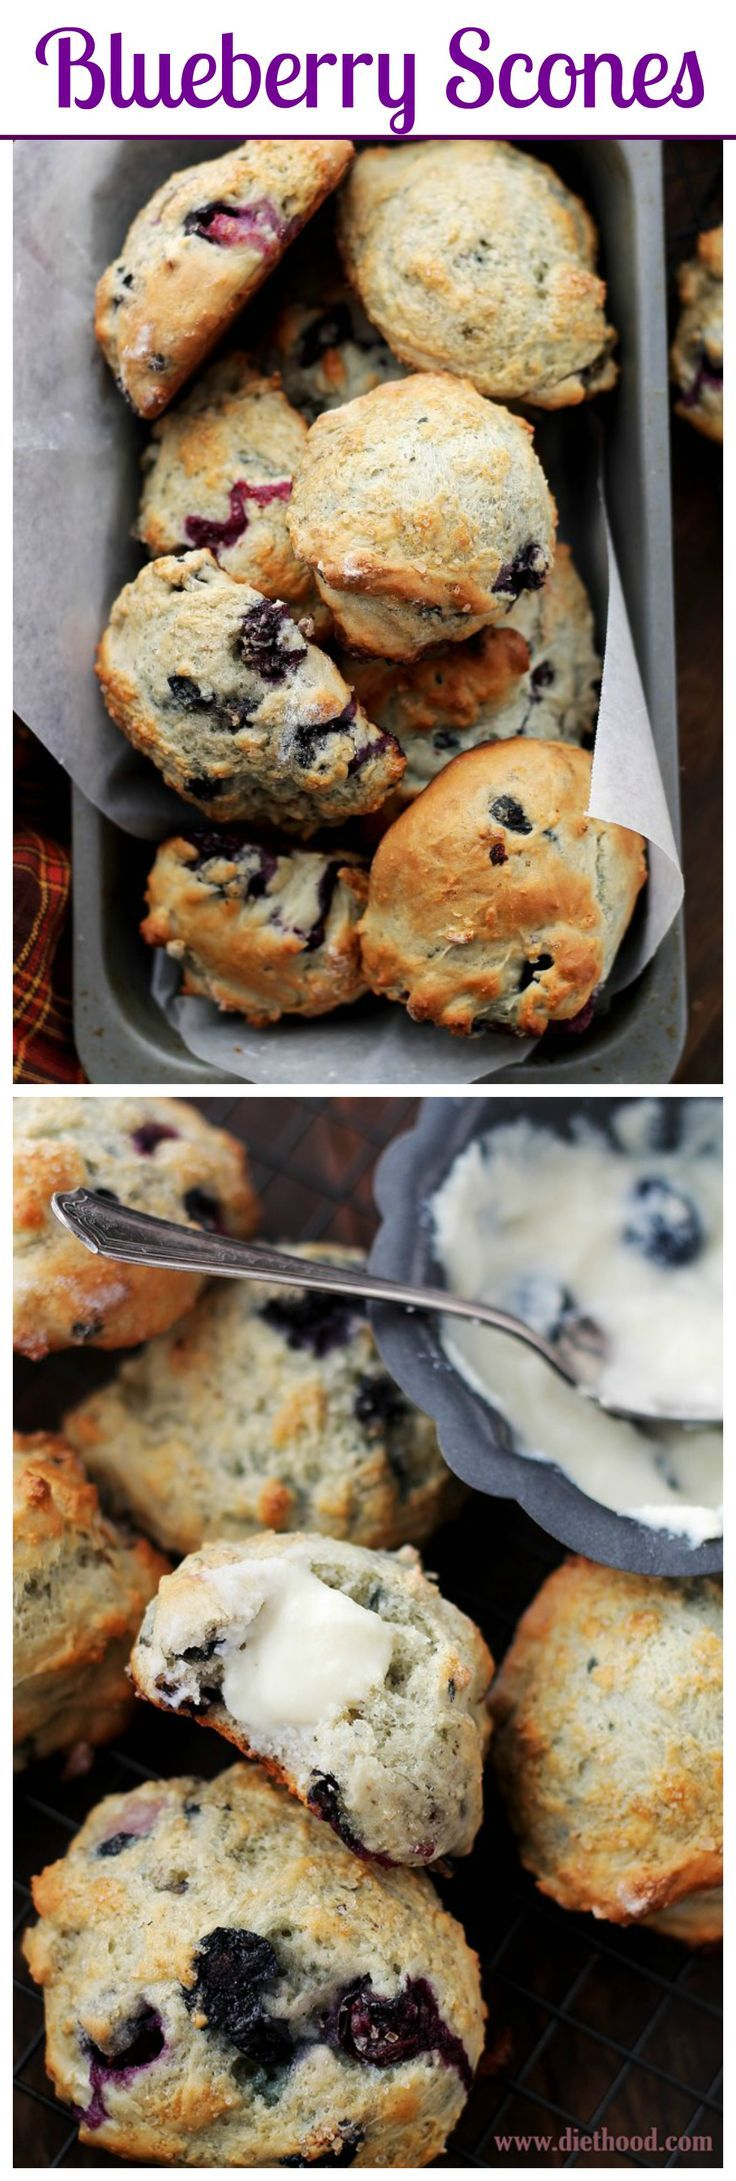 Light, fluffy, homemade Blueberry Scones, topped with turbinado sugar and dipped in a creamy, rich and sweet Blueberry Cream Cheese Frosting.